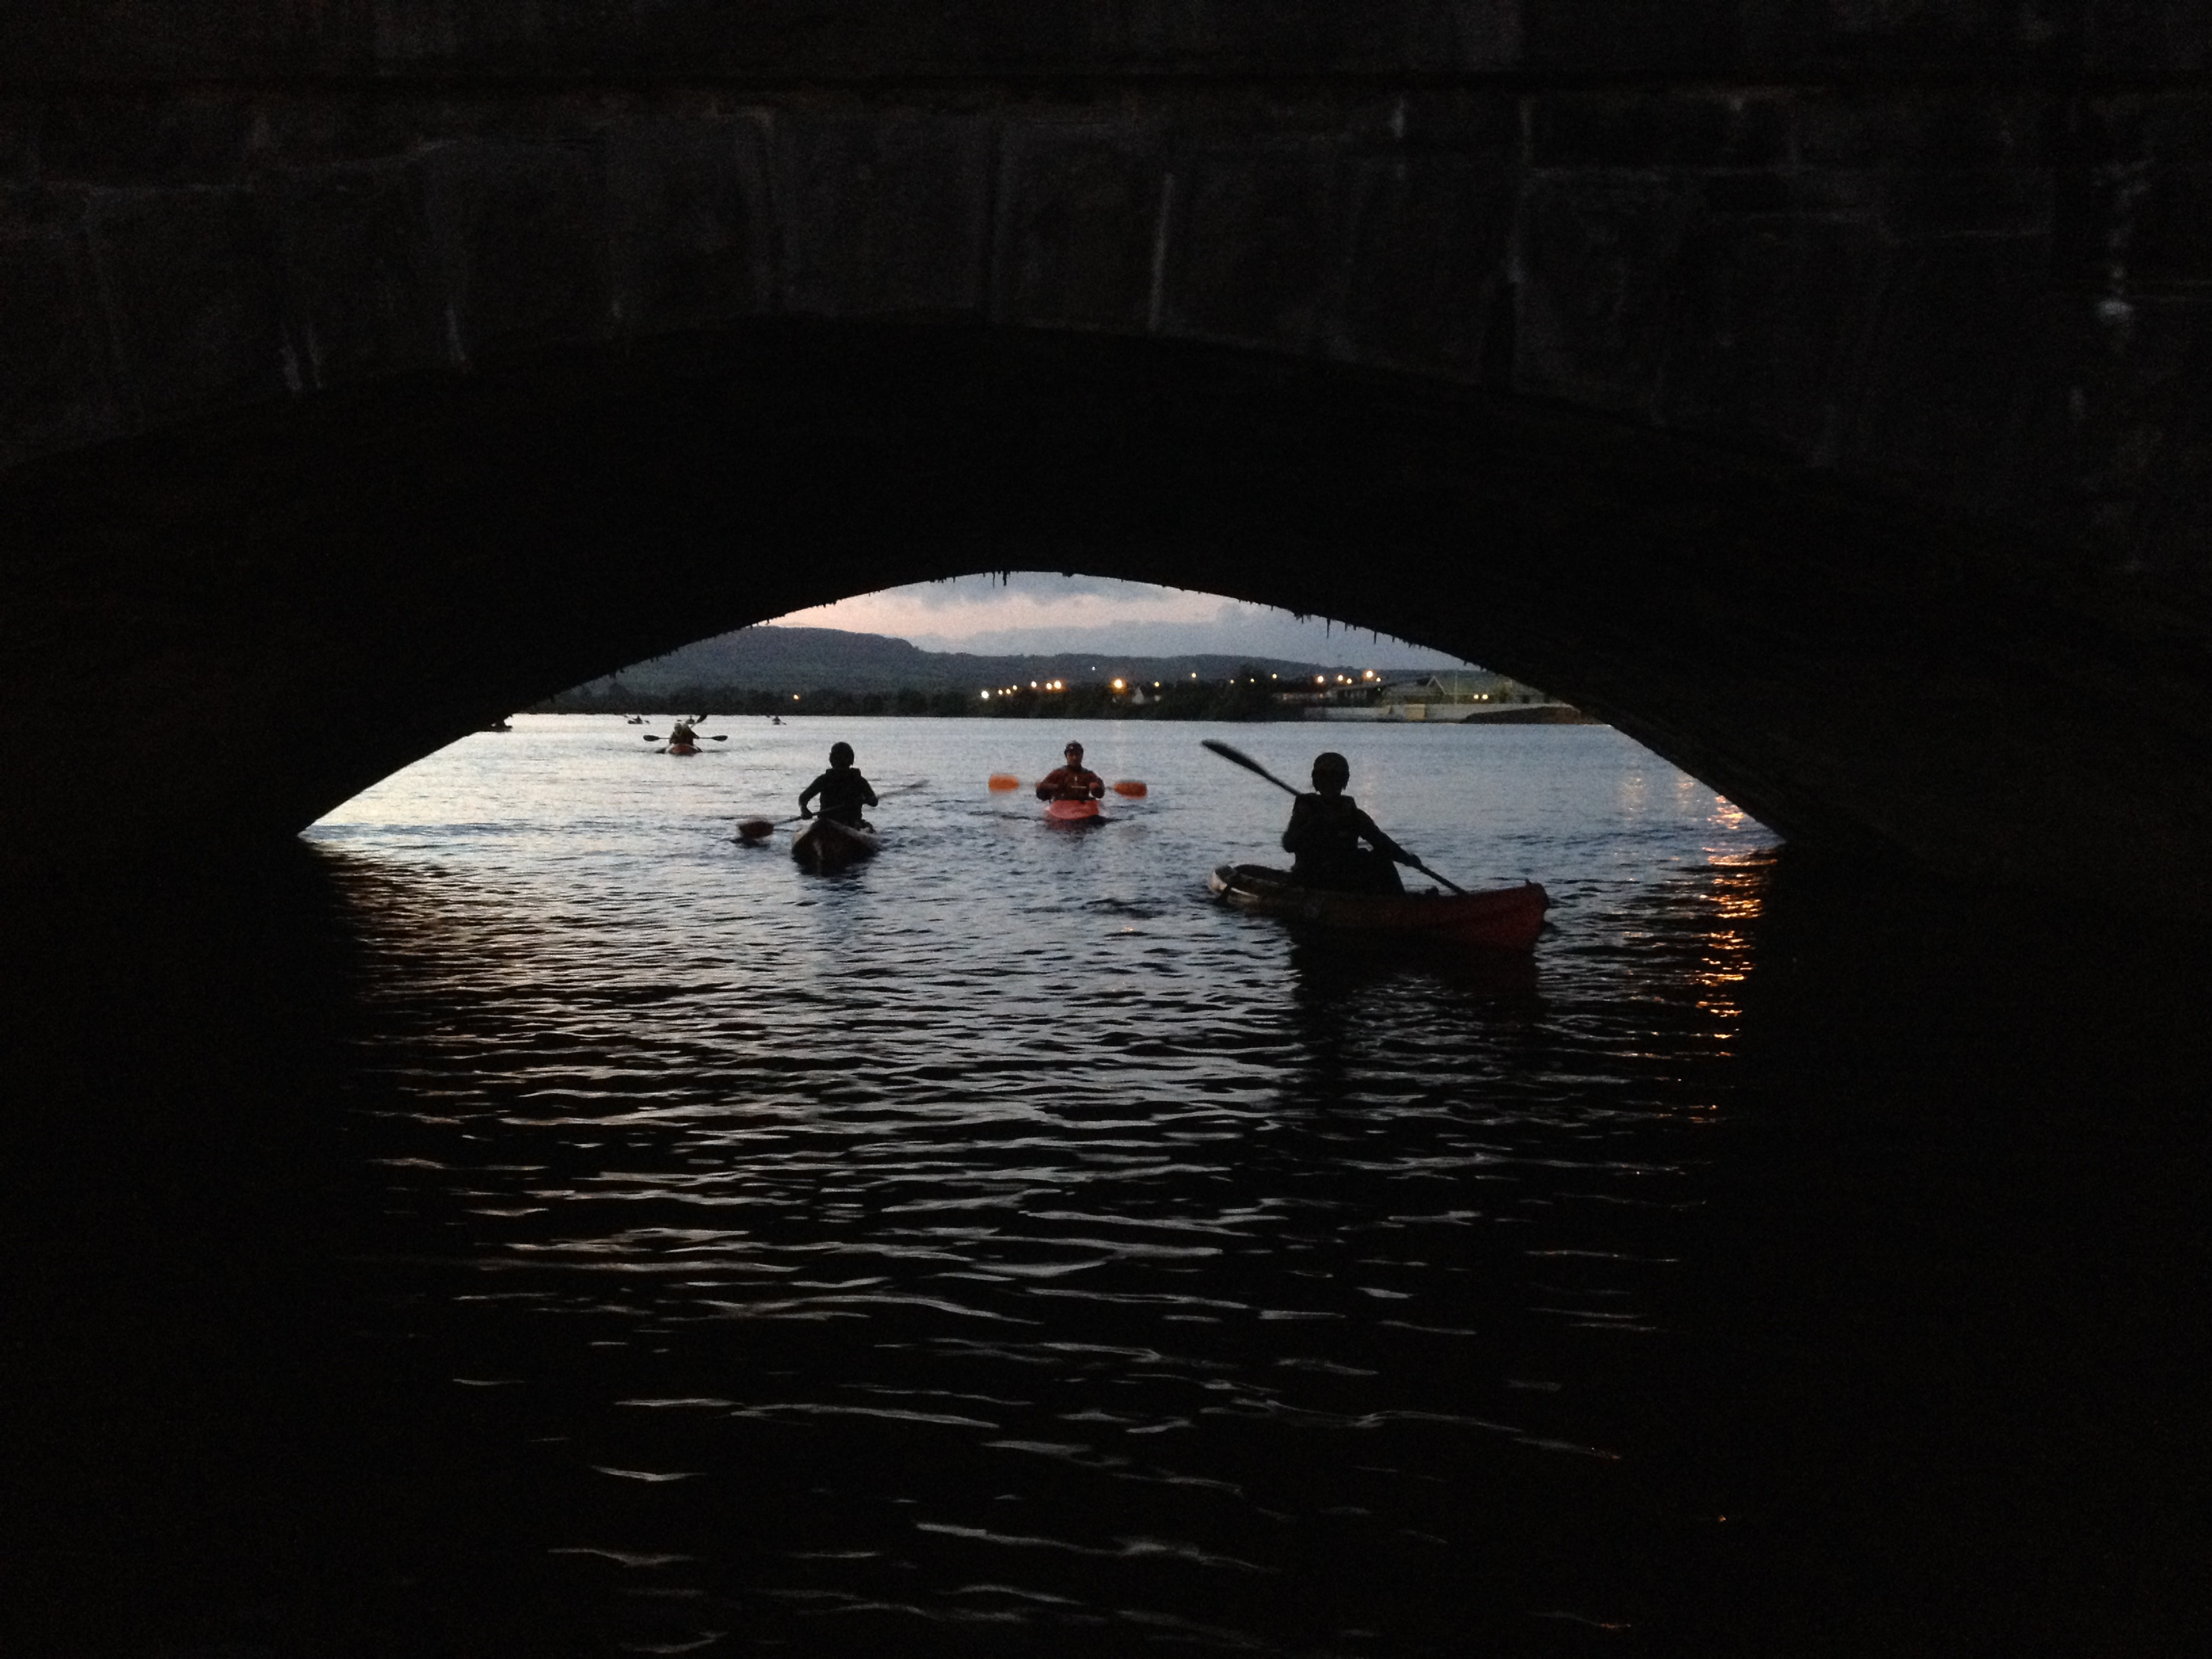 Night Kayaking - Tours from Limerick - Things to see in Limerick